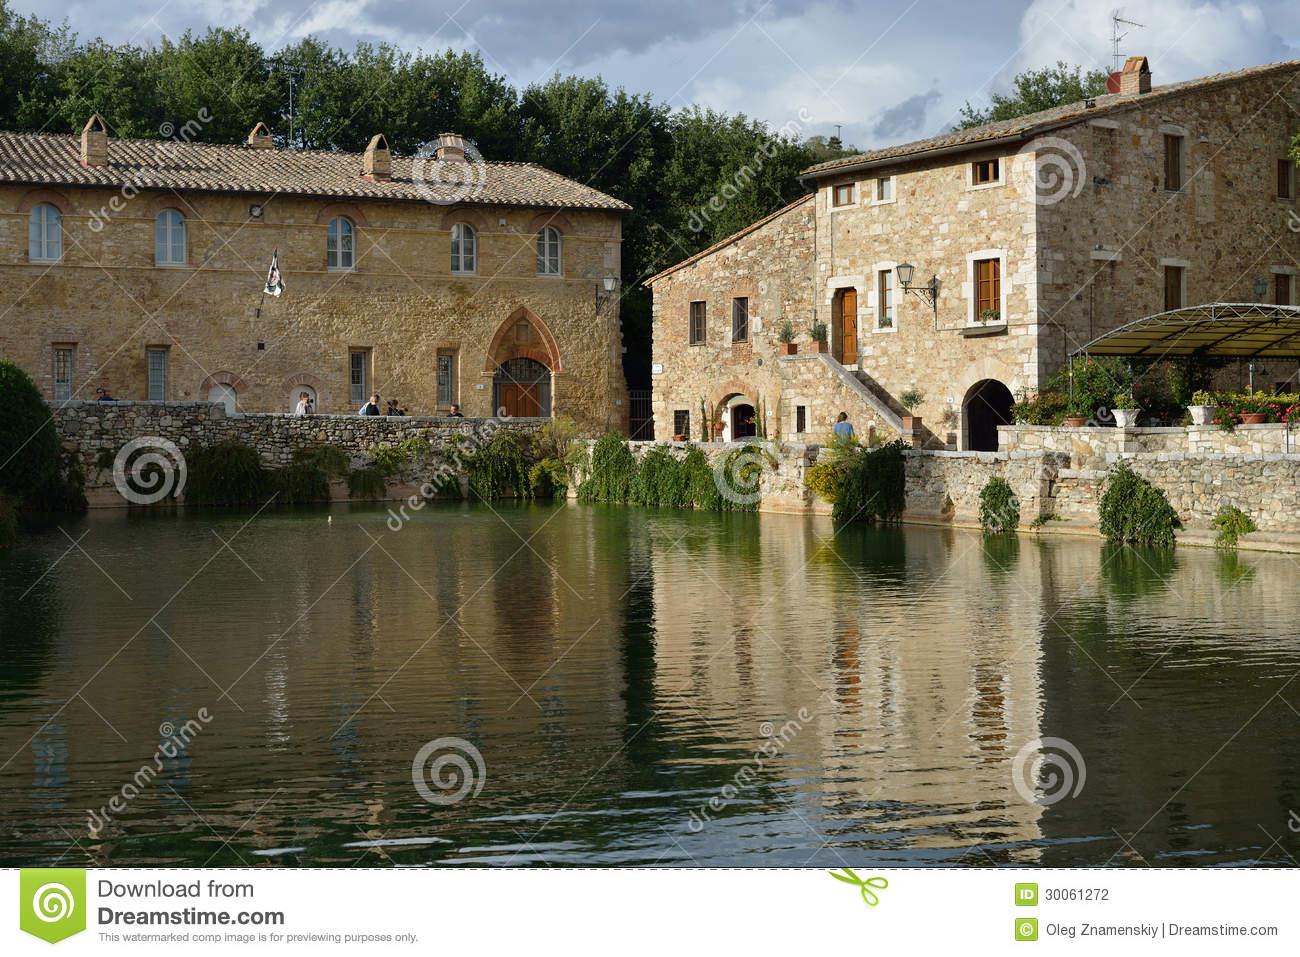 Old Thermal Baths In Bagno Vignoni Editorial Photography - Image: 30061272